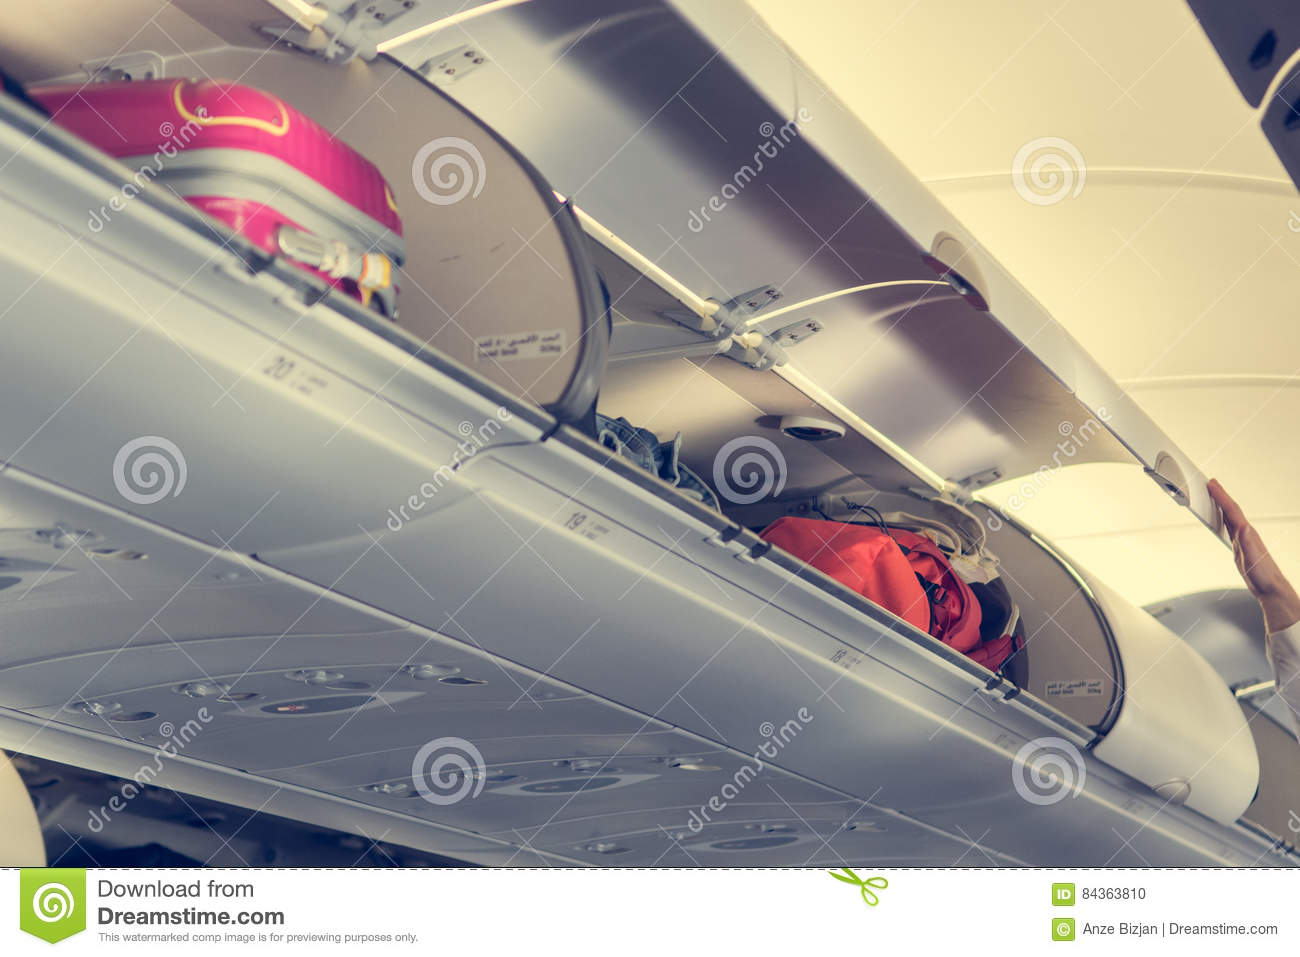 Airplane Interior With Overhead Luggage Compartment. Stock